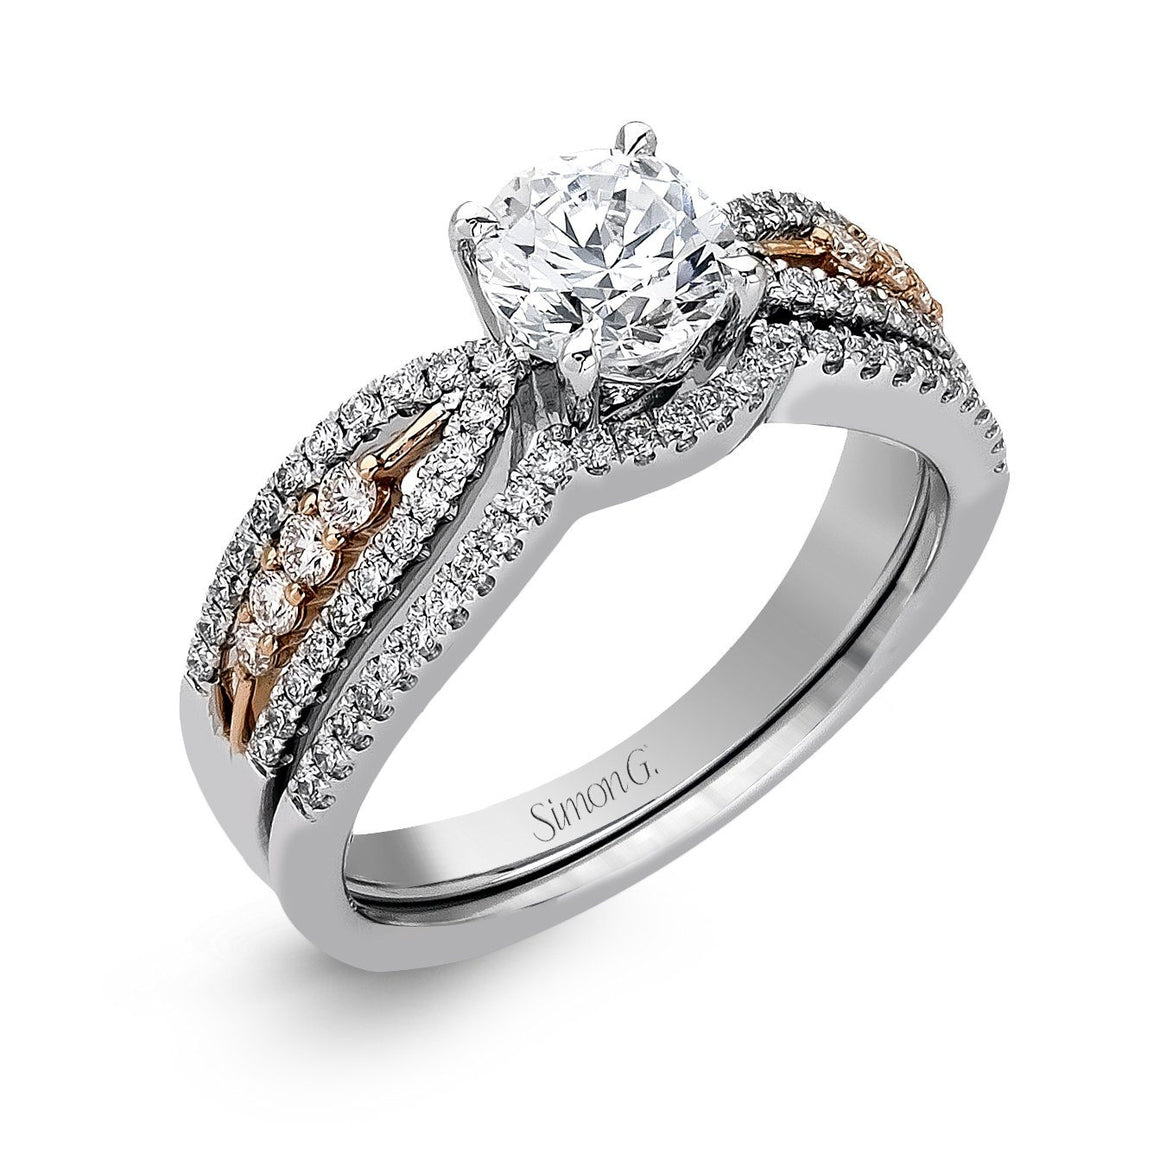 Simon G - MR2321, Engagement Ring Set, Simon G - Birmingham Jewelry